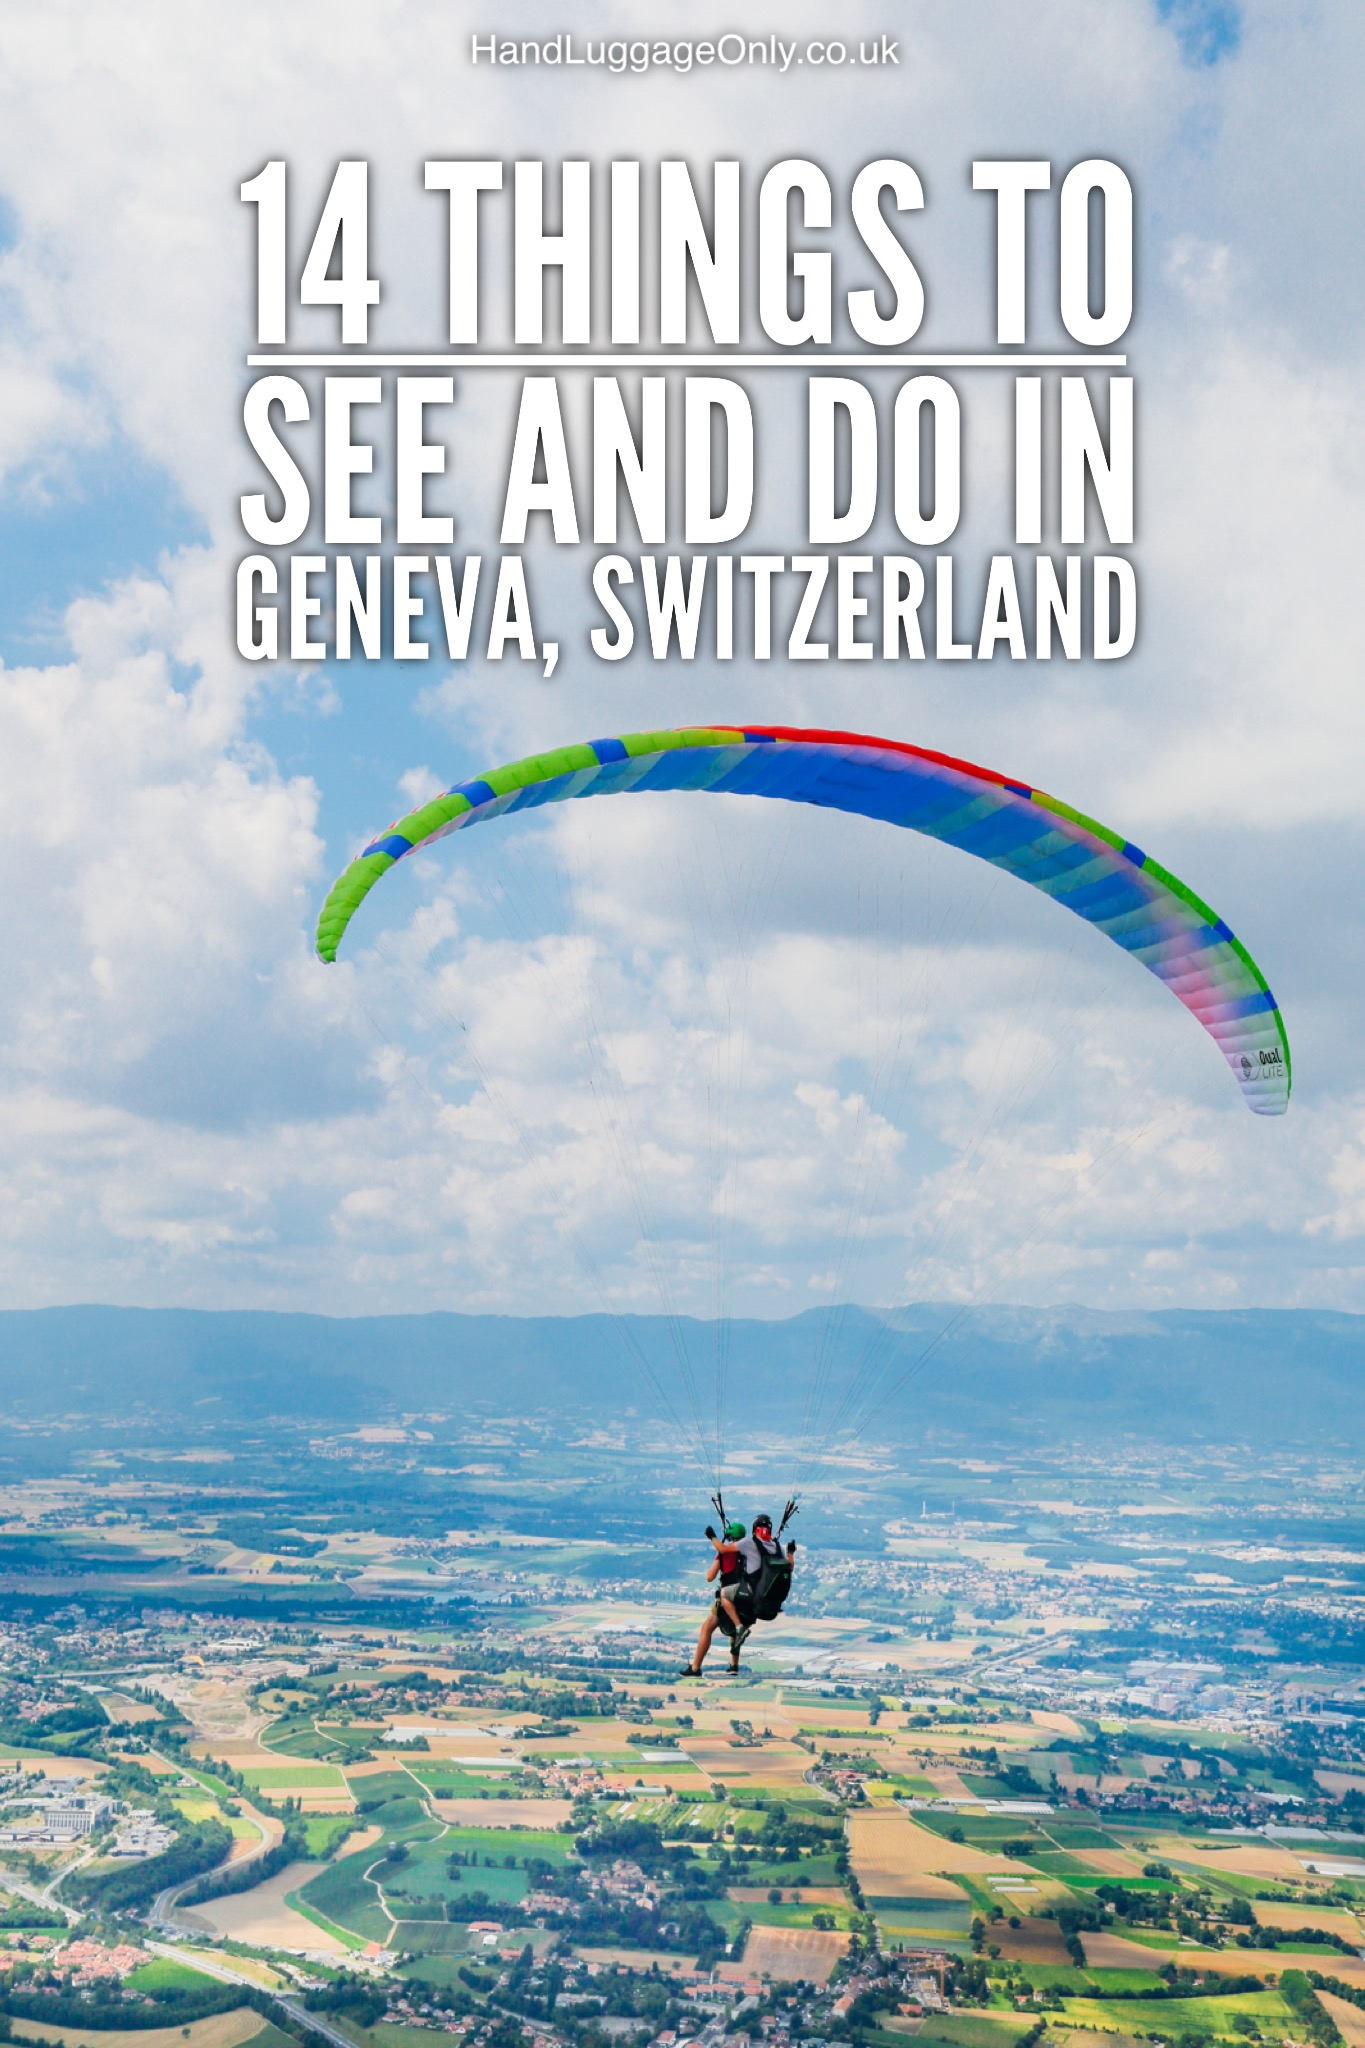 14 Things To Do And See In Geneva, Switerland (1)